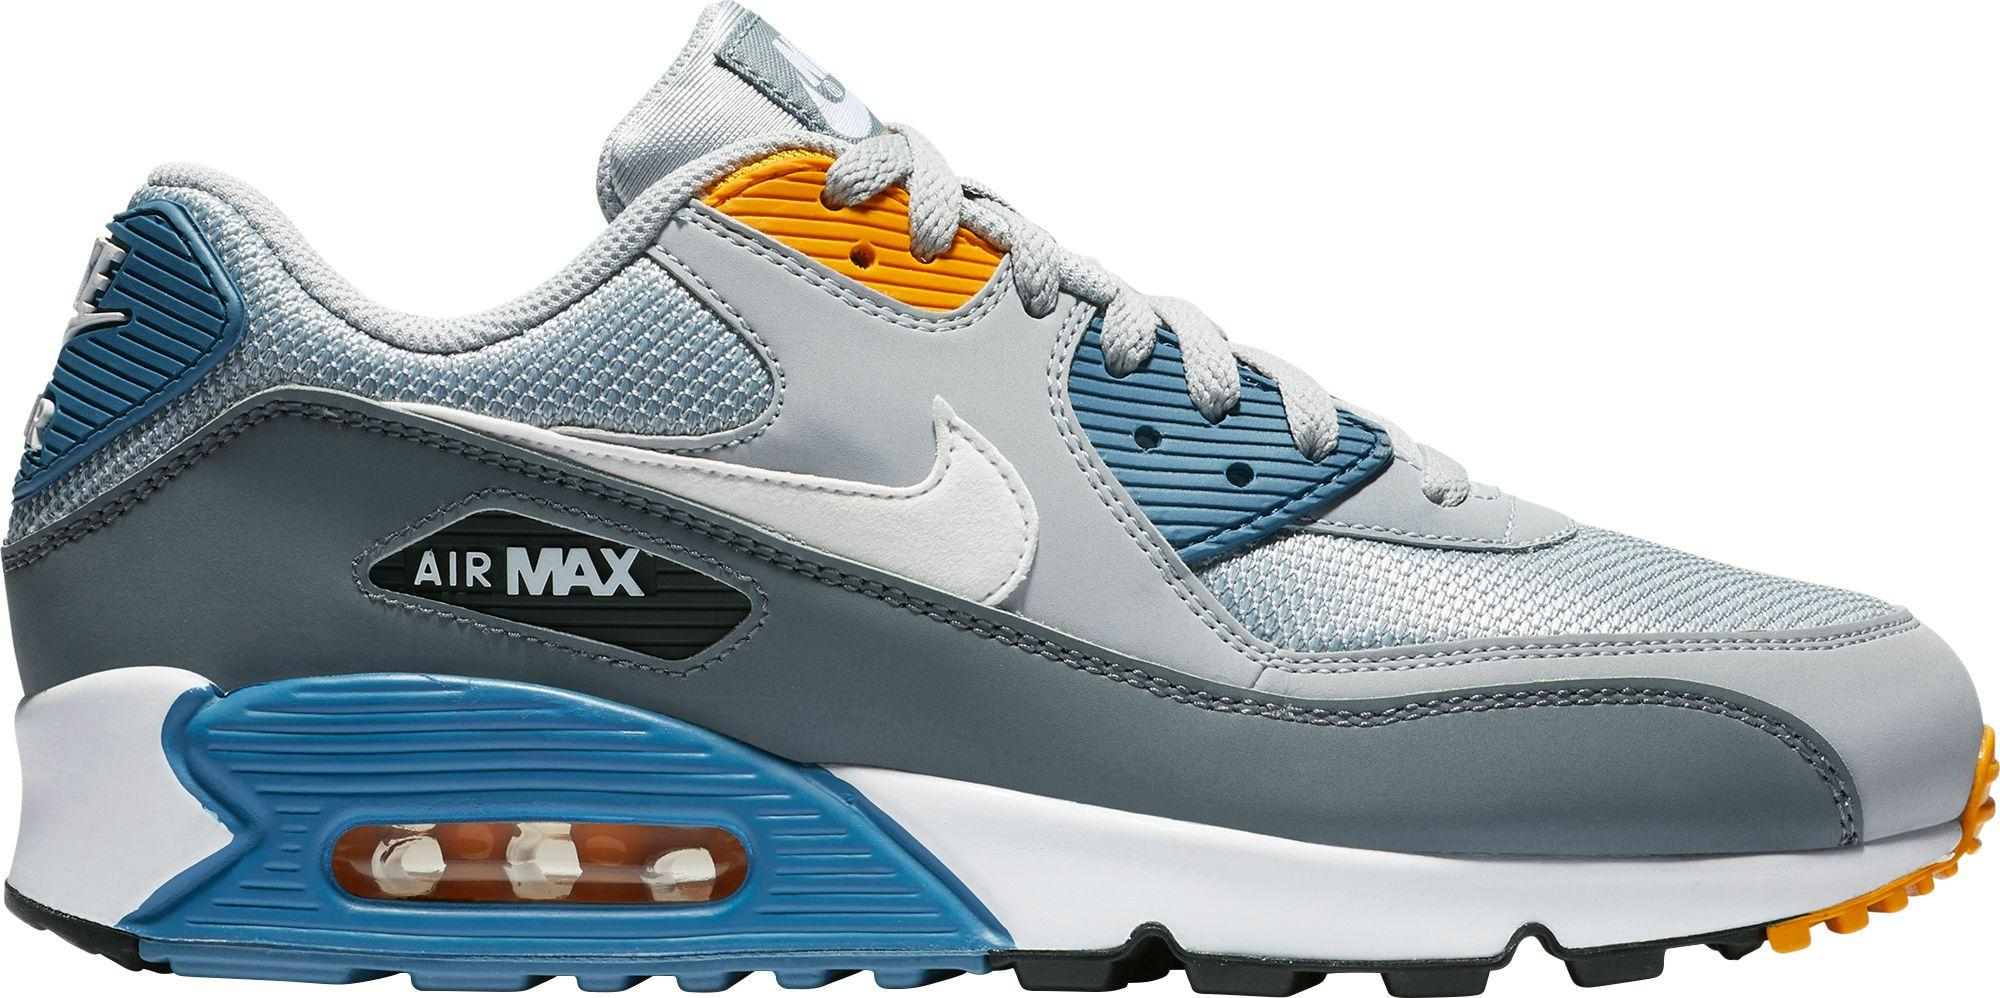 56d36be4fe Lyst - Nike Air Max '90 Essential Shoes in Blue for Men